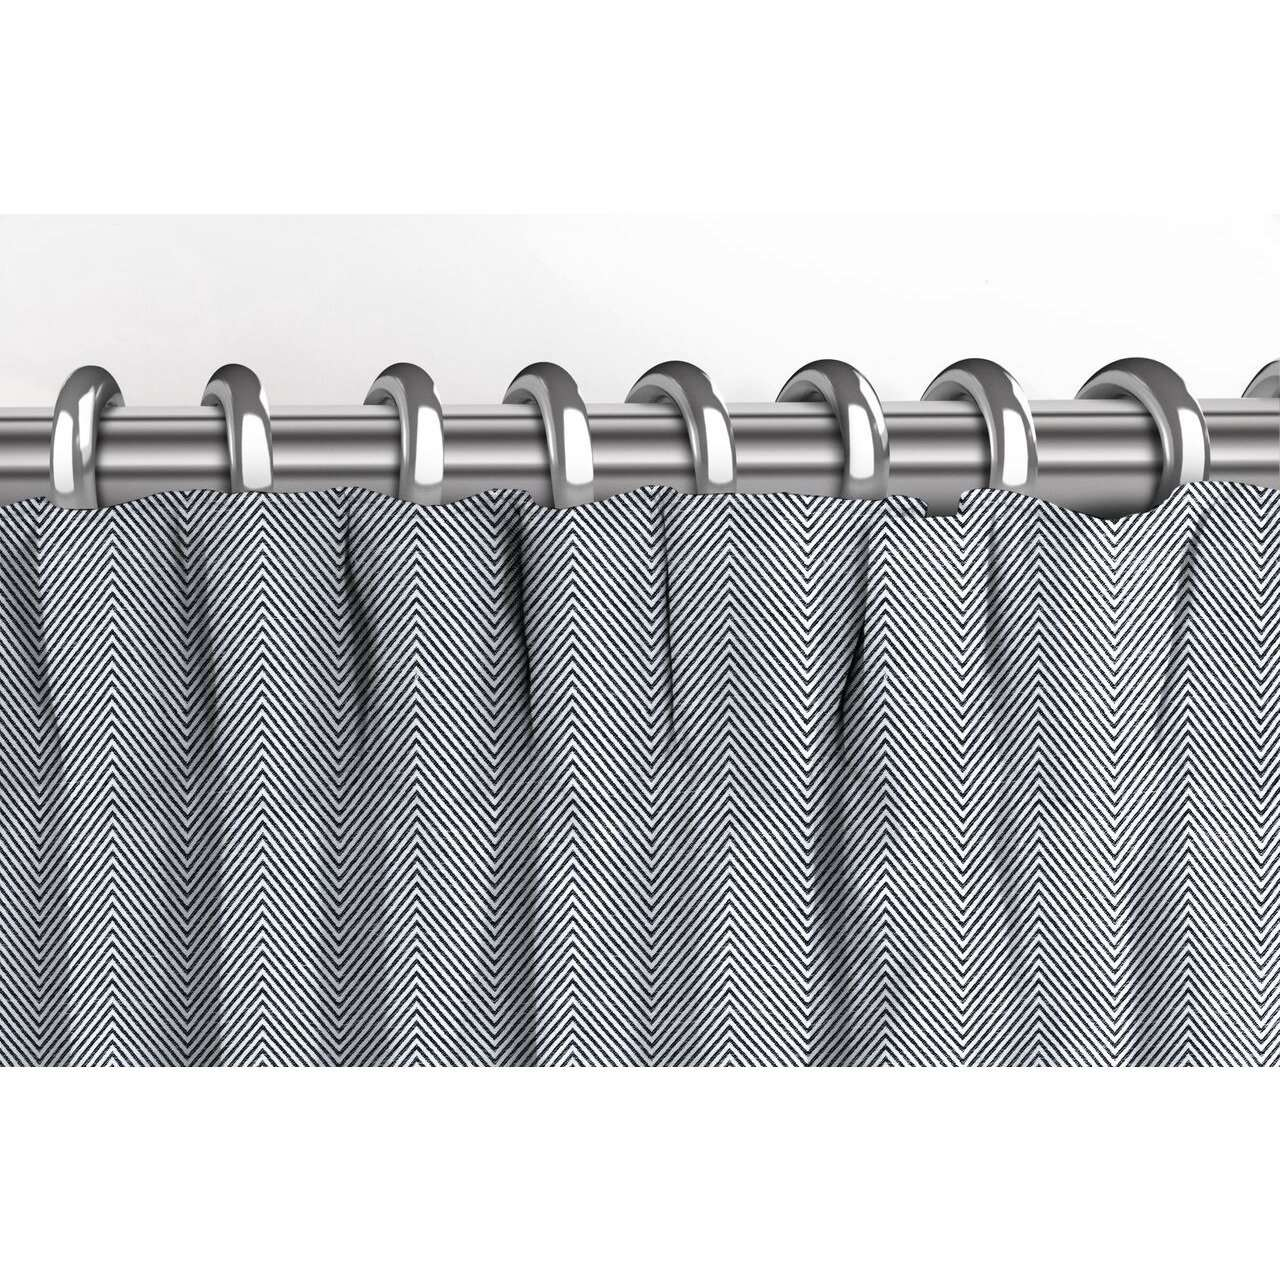 McAlister Textiles Herringbone Twill Black + White Curtains Tailored Curtains